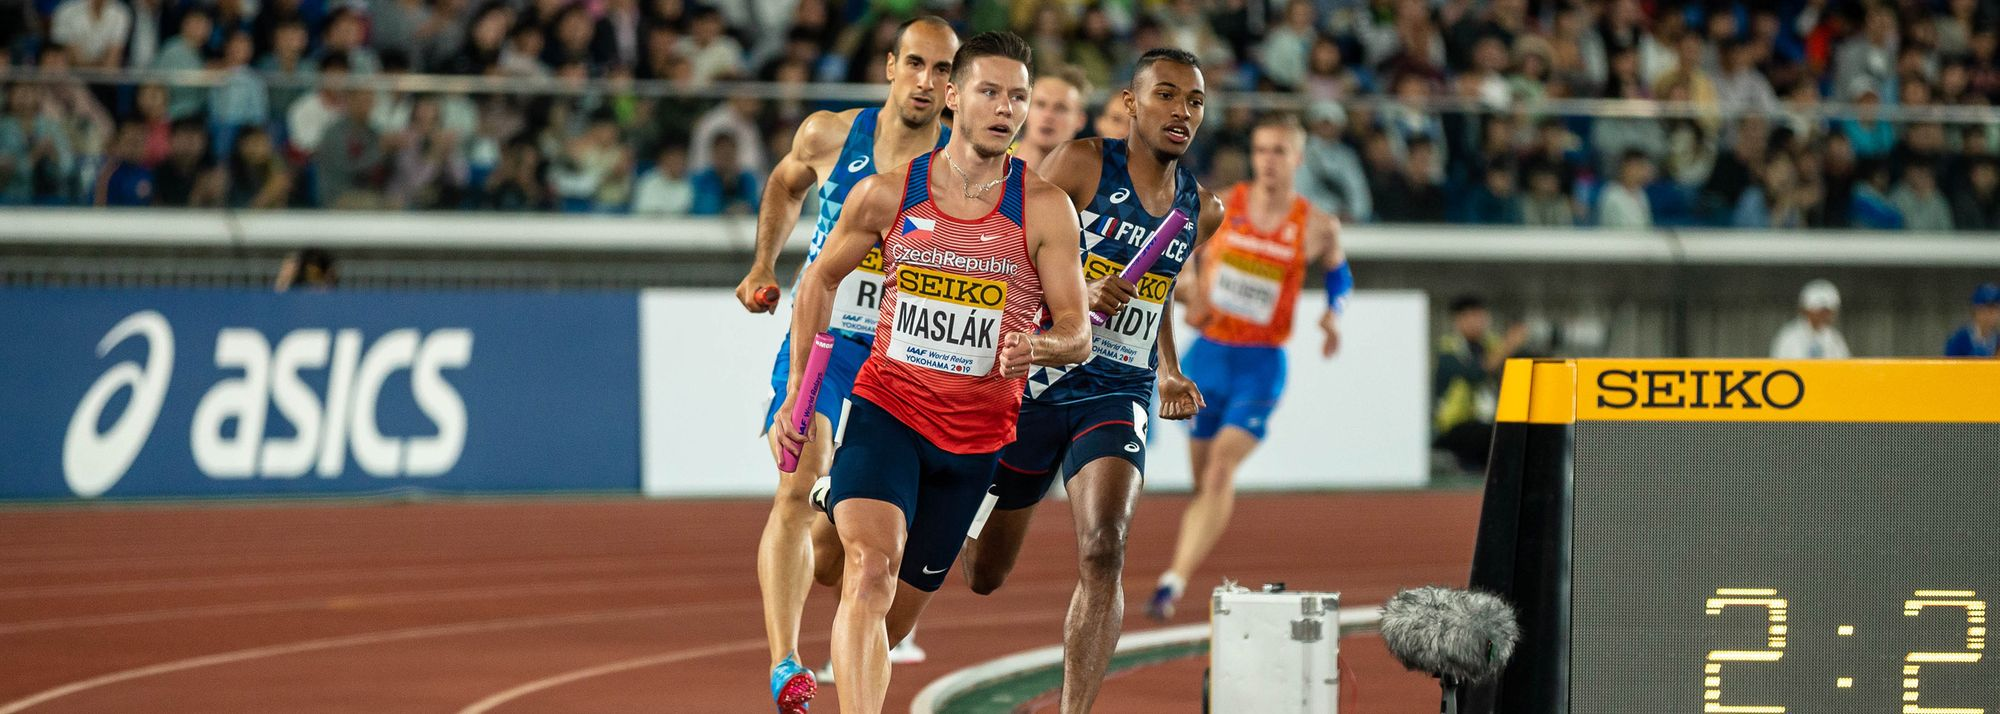 Three-time world indoor champion Pavel Maslak, European indoor 400m champion Femke Bol, and African 100m champion Akani Simbine are among the big names on the final entry list for the World Athletics Relays Silesia 21.